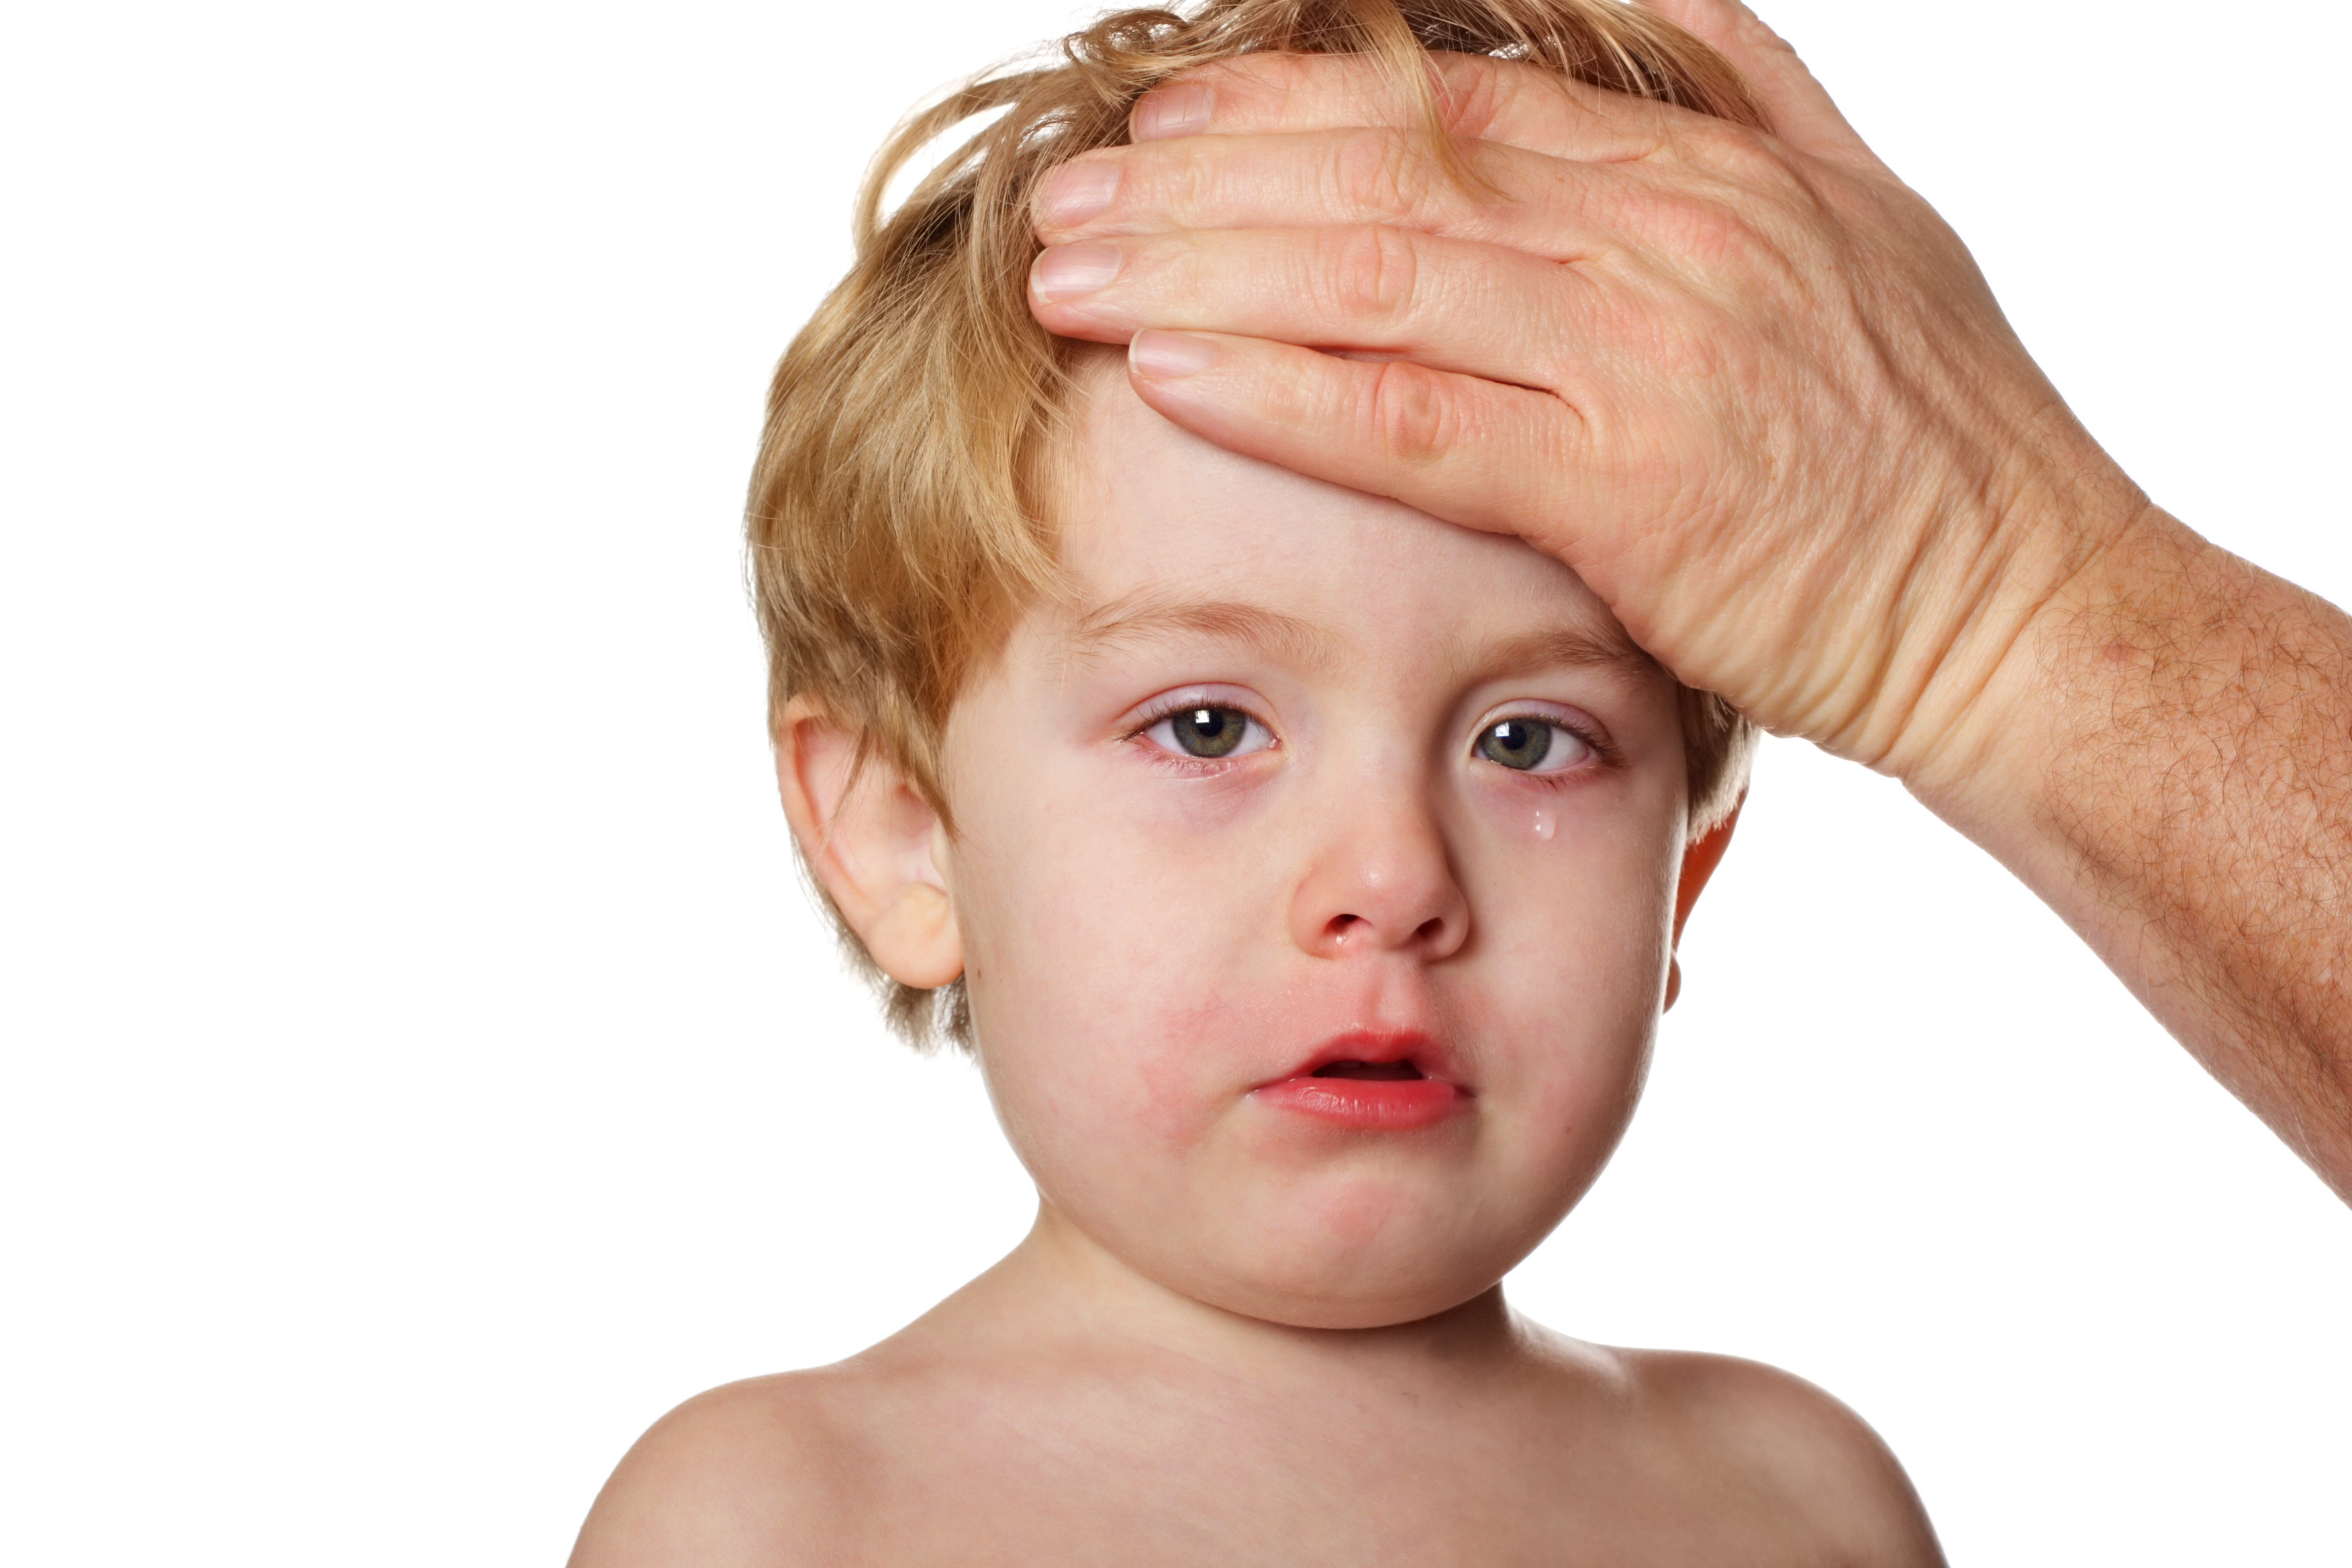 bigstock-sick-child-1171871.jpg